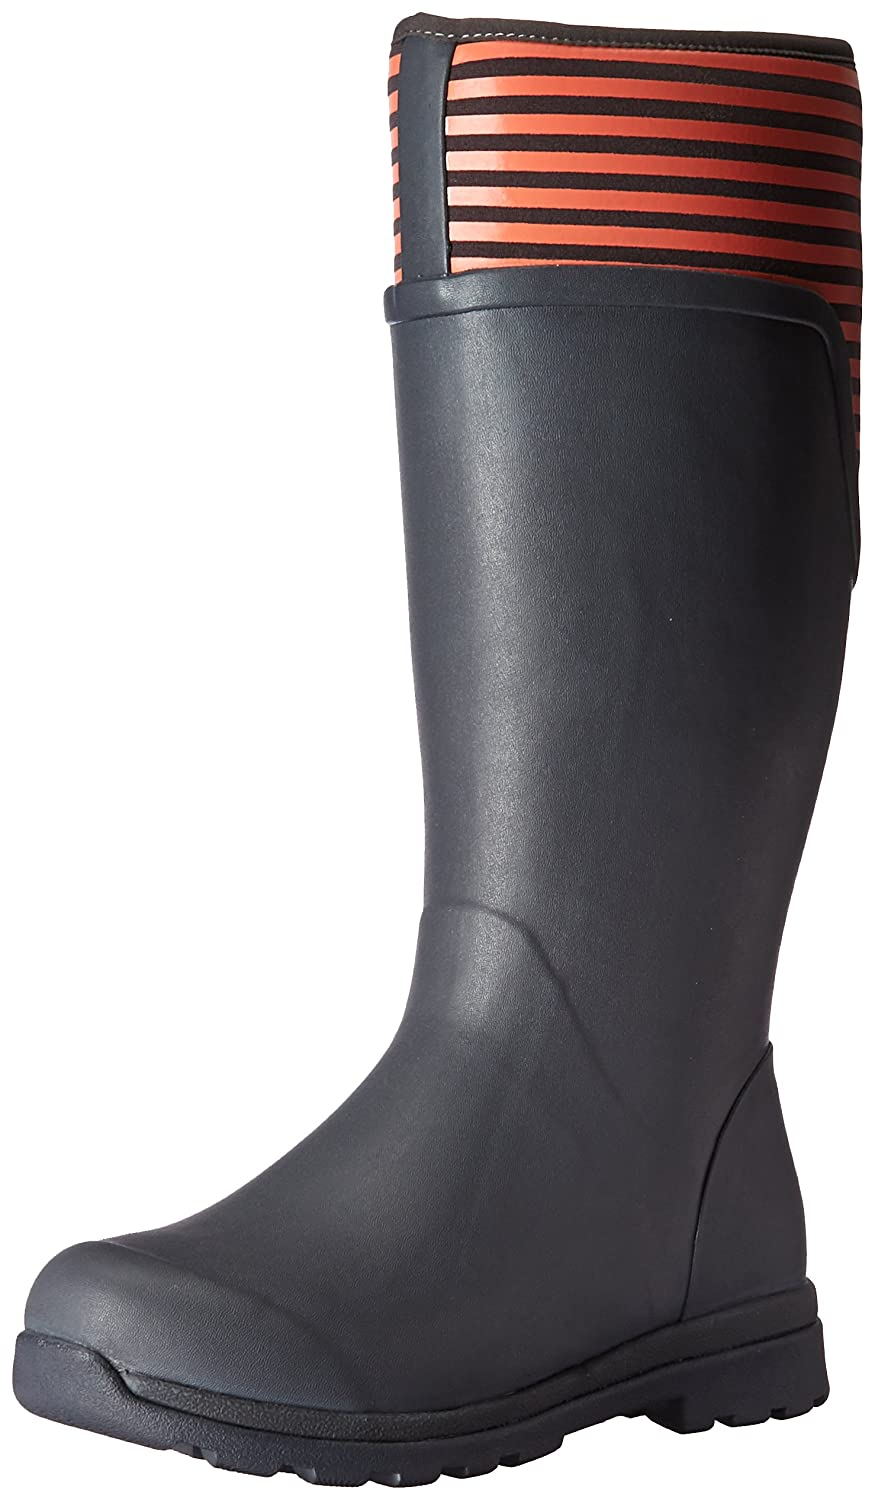 Muck Boot Women's Cambridge Tall Snow B01N22NKHU 11 B(M) US|Gray With Coral Stripe